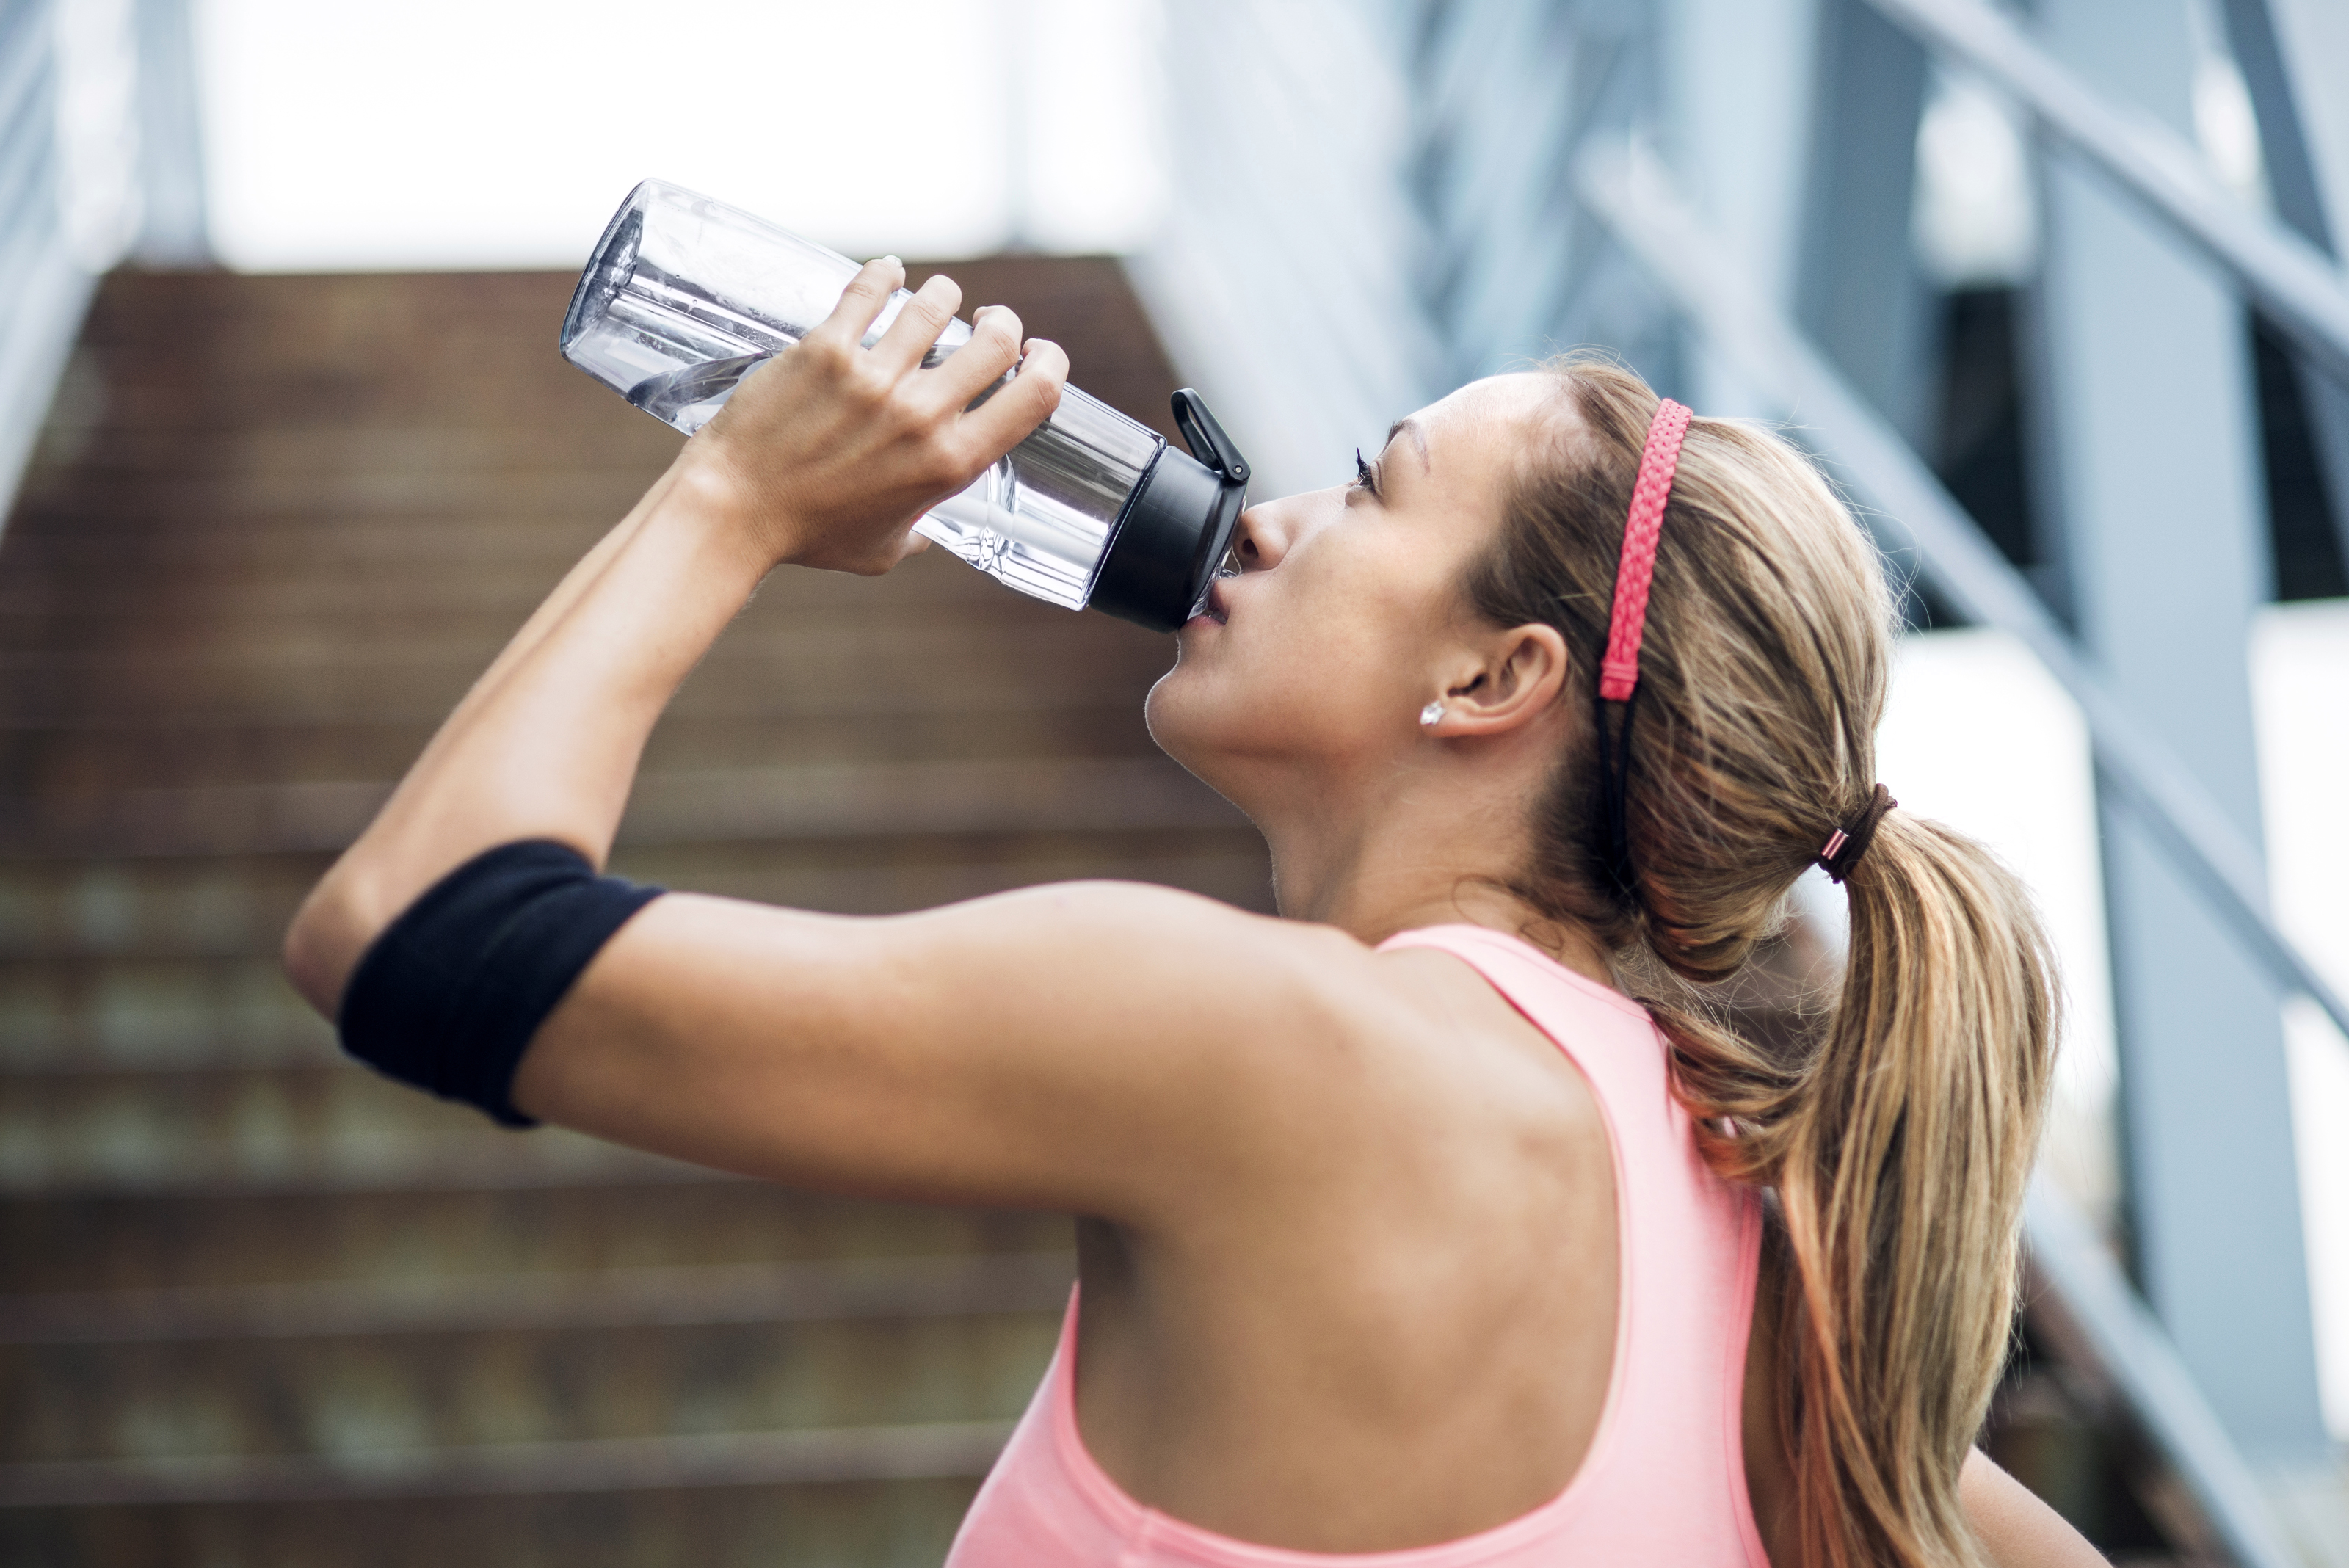 Hydrating while working out